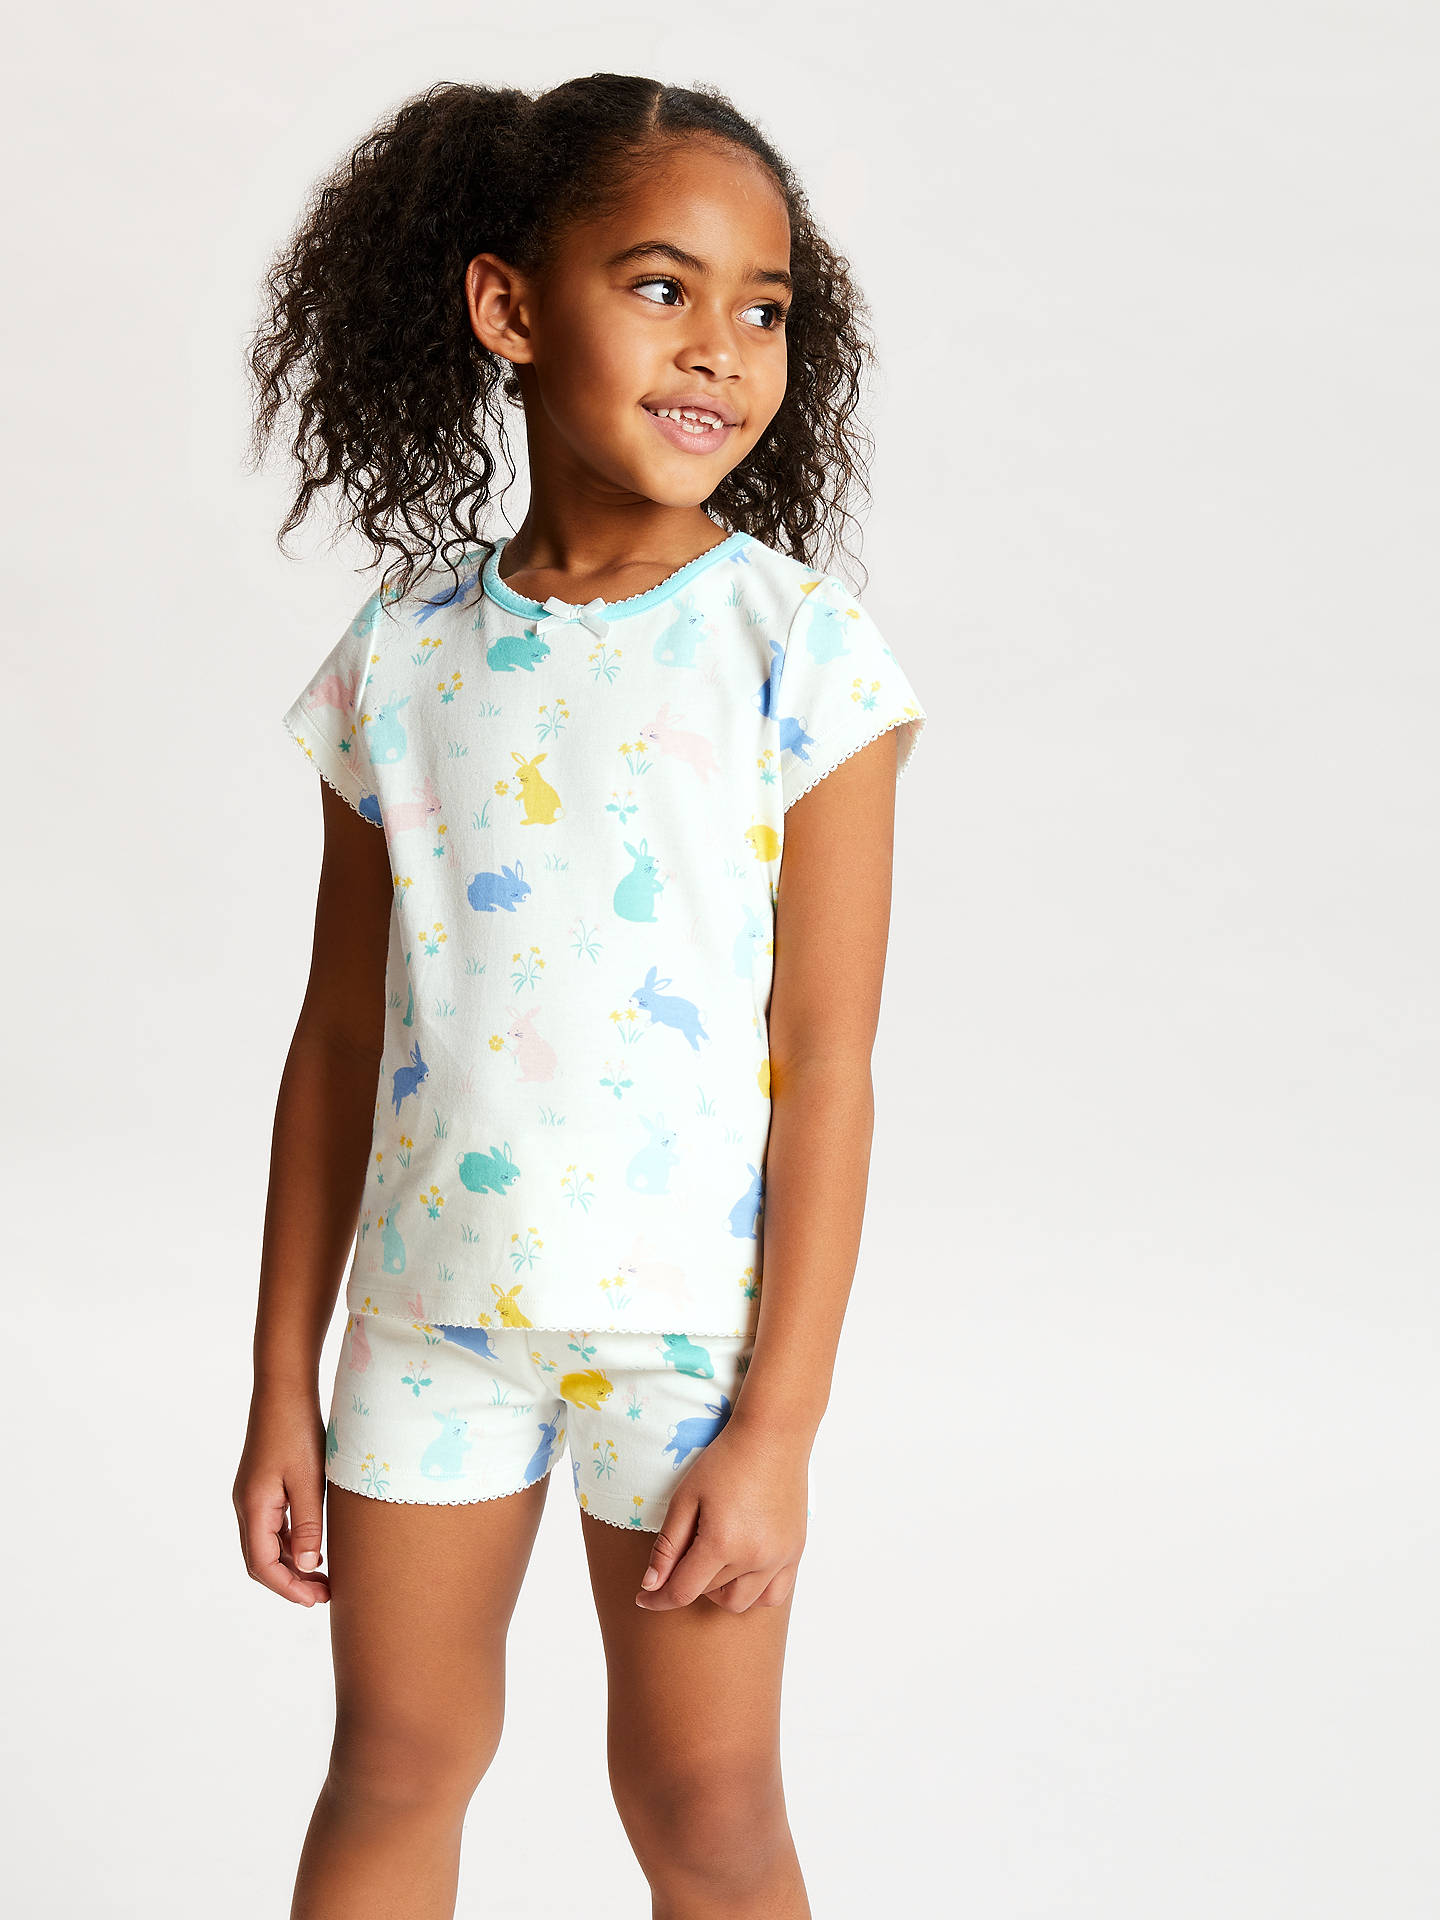 Buy John Lewis & Partners Bunny Print Short Pyjamas, Pack of 2, Blue/White, 8 years Online at johnlewis.com